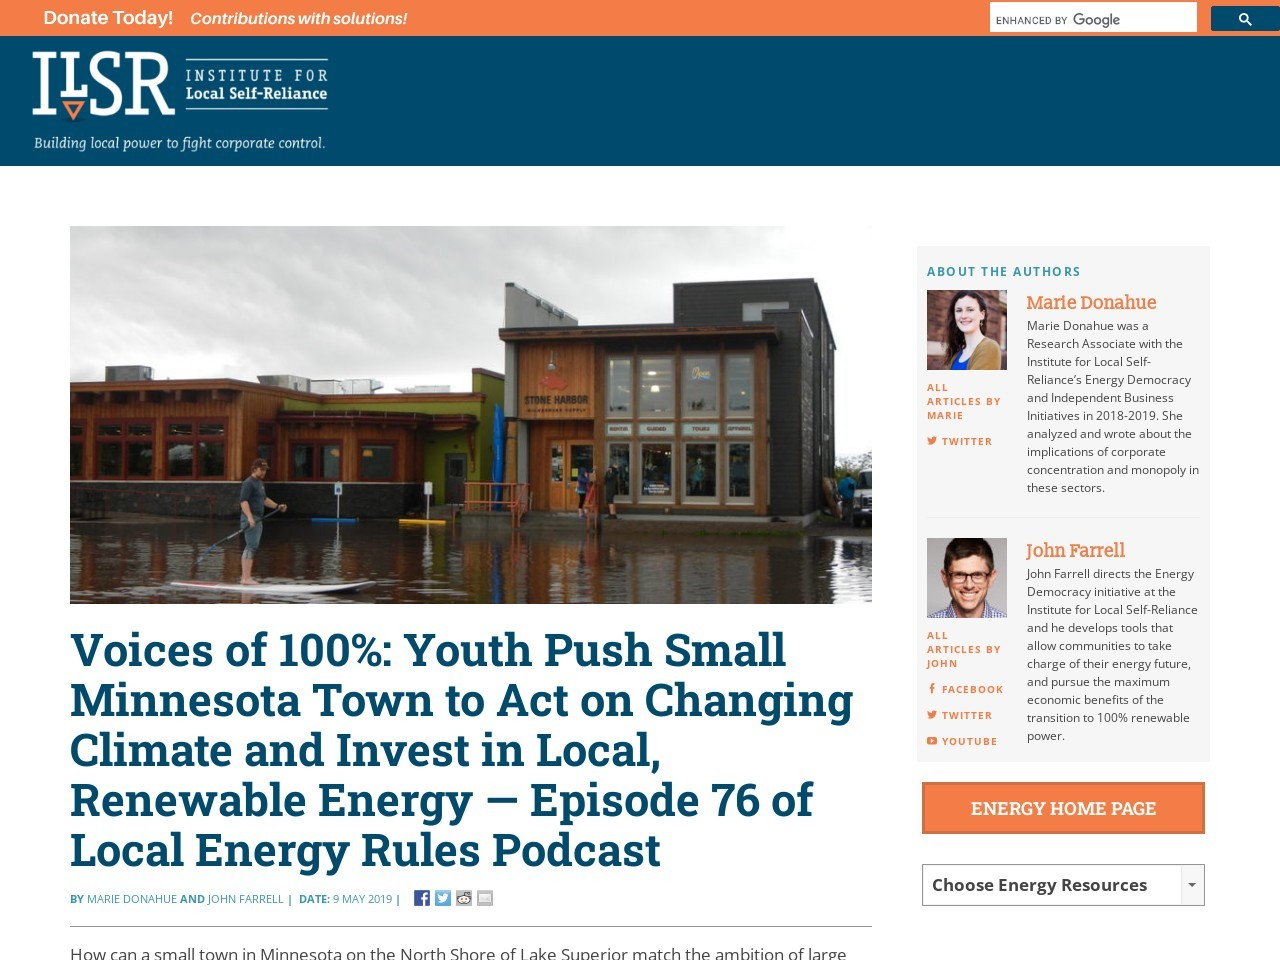 Voices of 100%: Youth Push Small Minnesota Town to Act on Changing Climate and Invest in Local, Renewable Energy